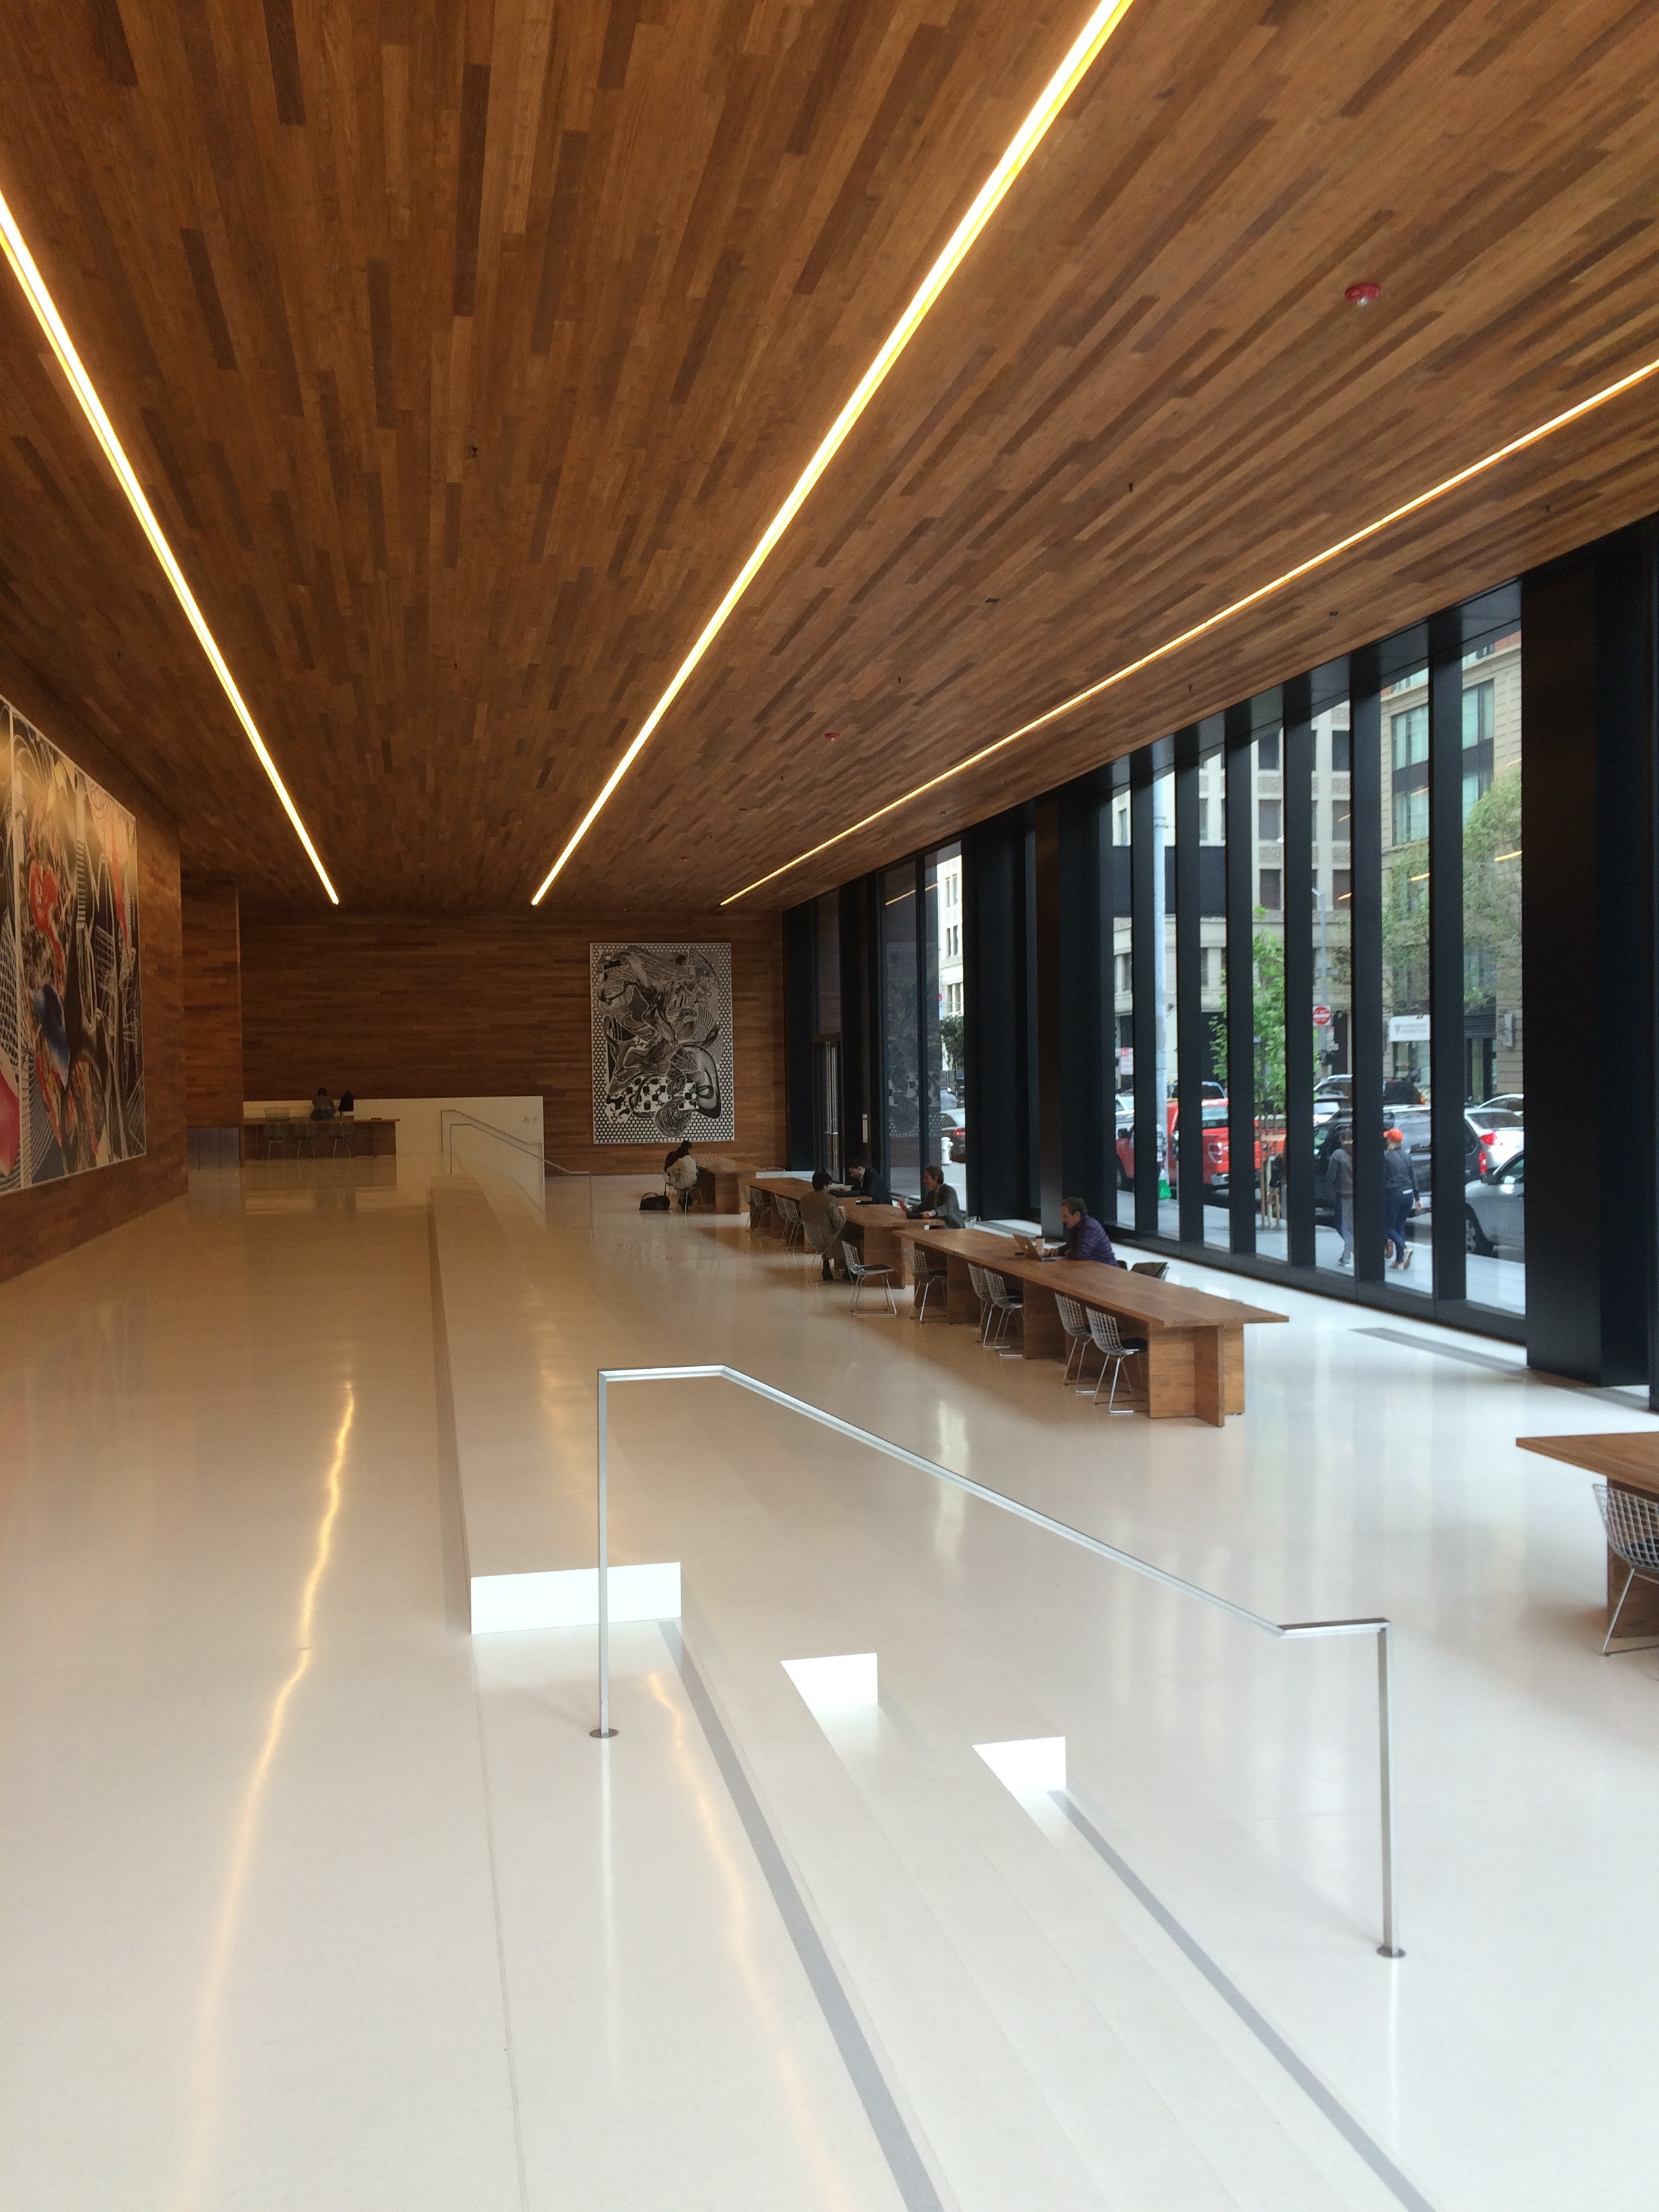 the building has a massive open public space with tables chairs and lots of fresh air!